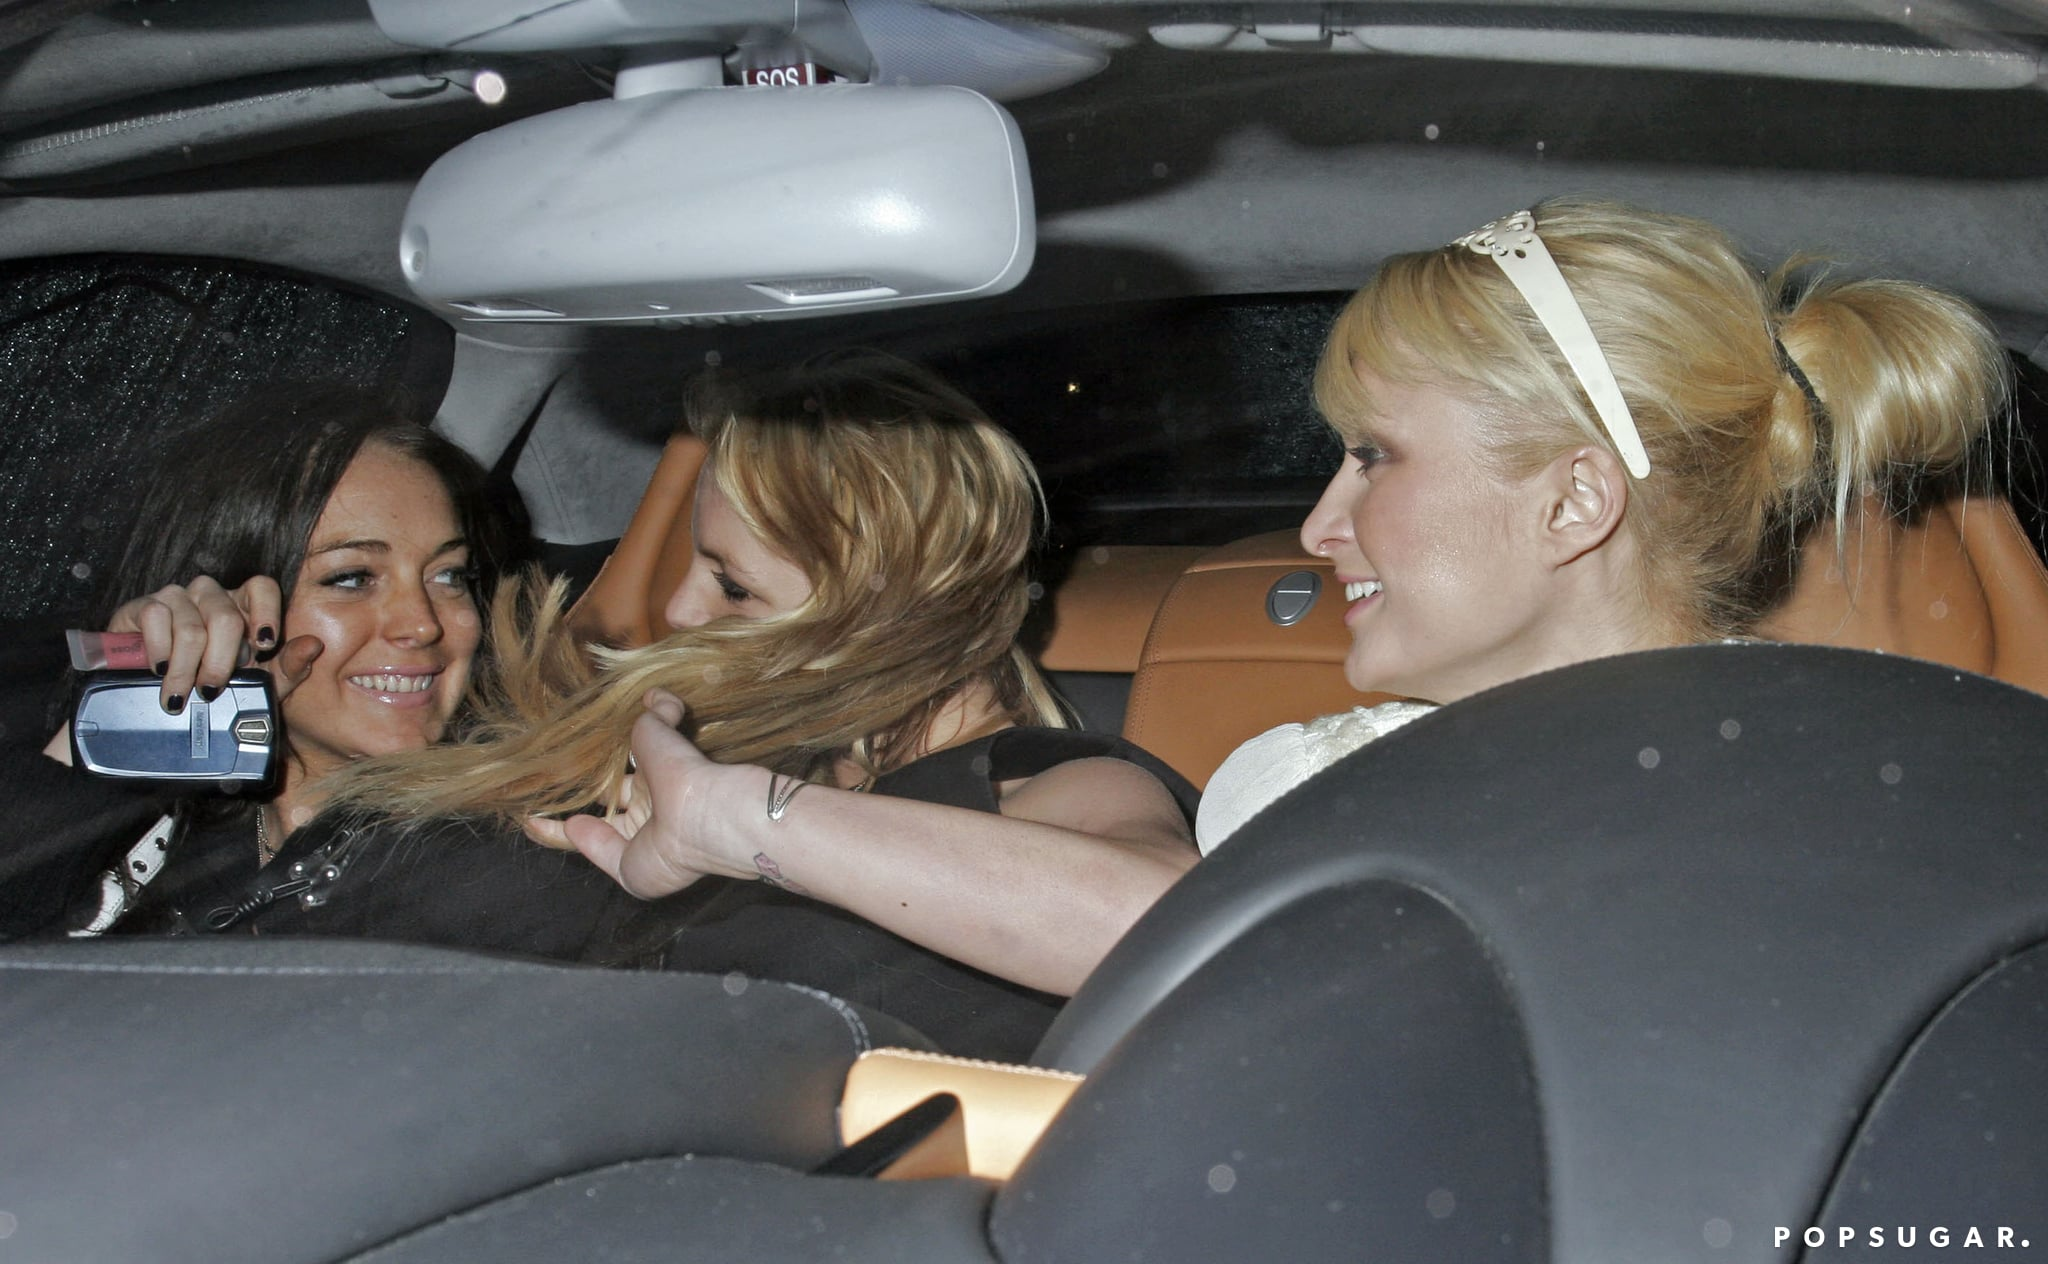 Then came the massive fame. In 2006, she went out with Britney Spears and Paris Hilton, and we would have died to be with them.